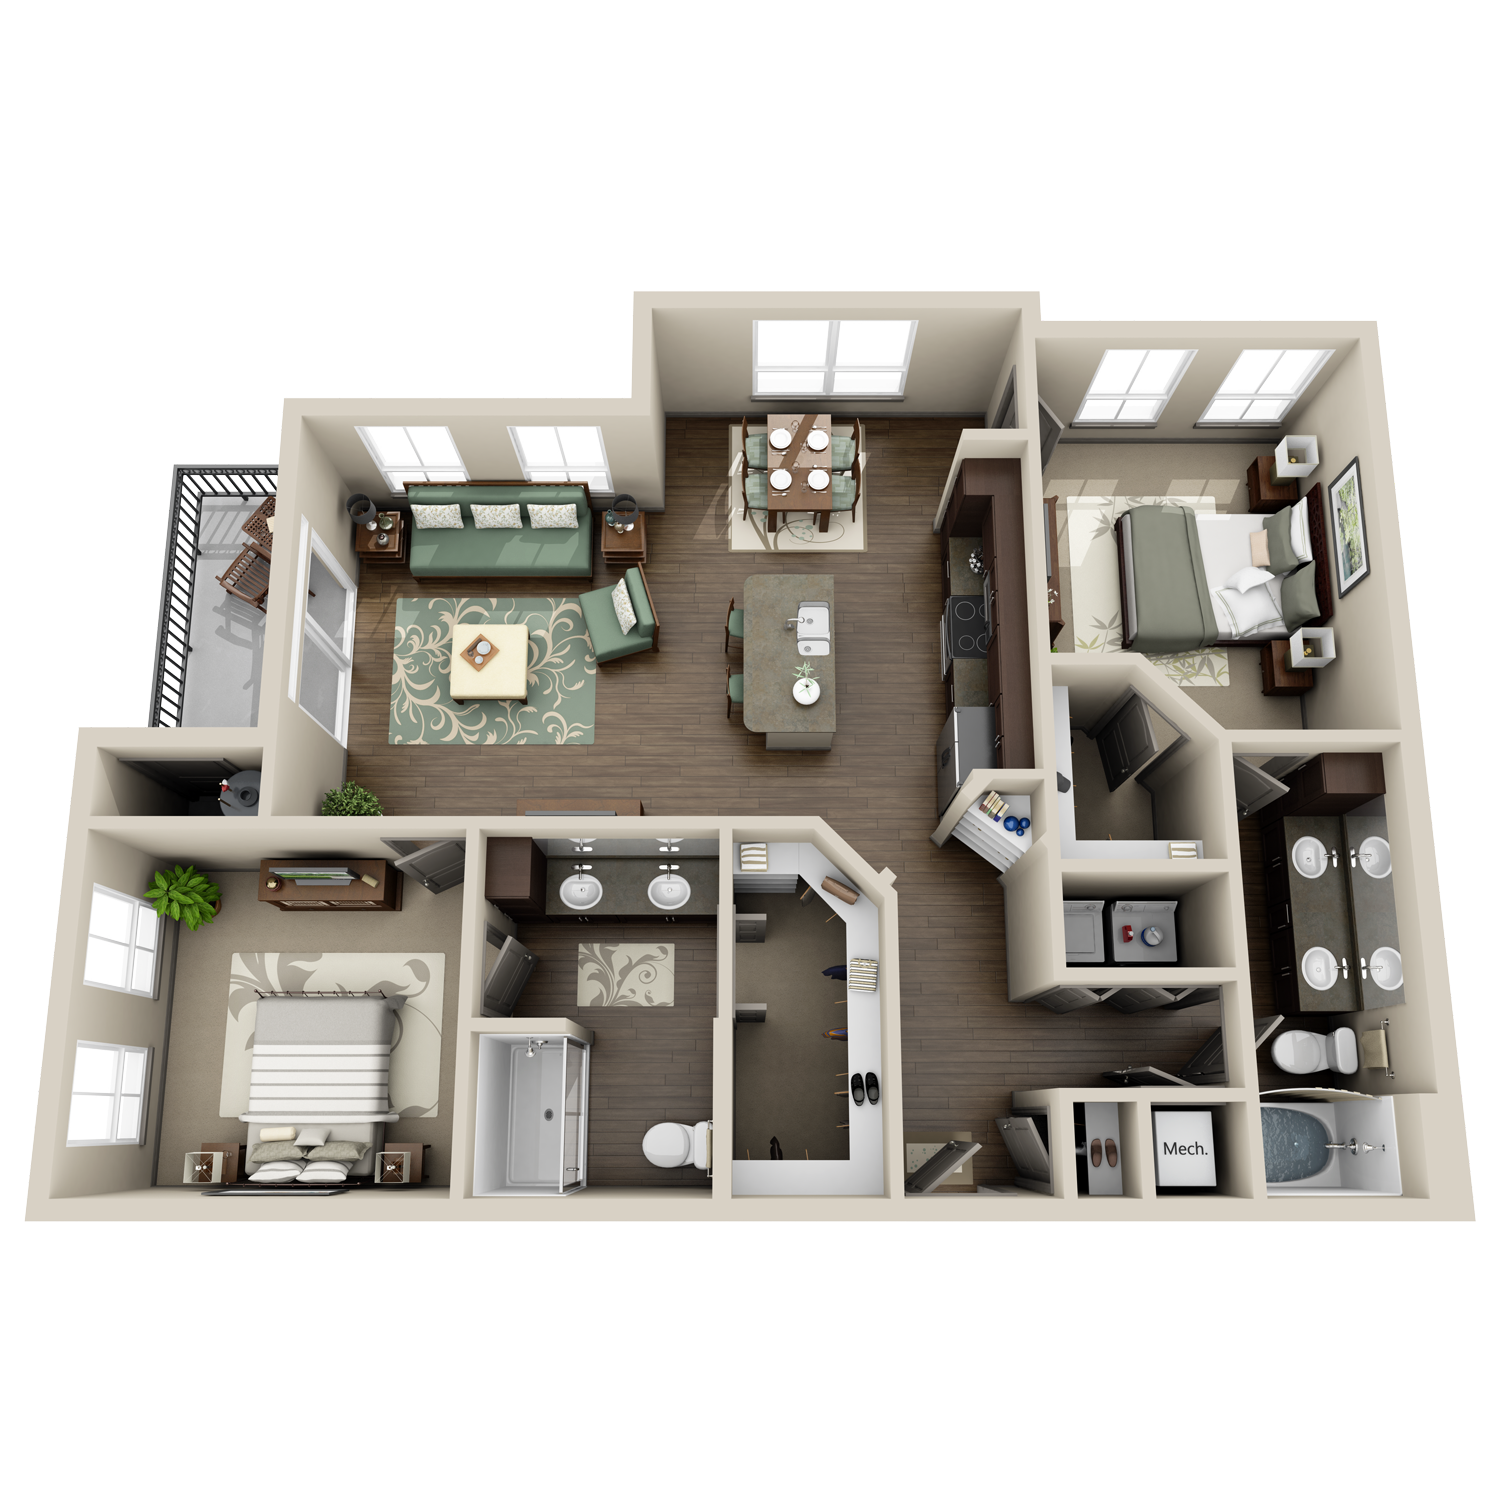 B4 floor plan featuring 2 bedrooms and 2 baths